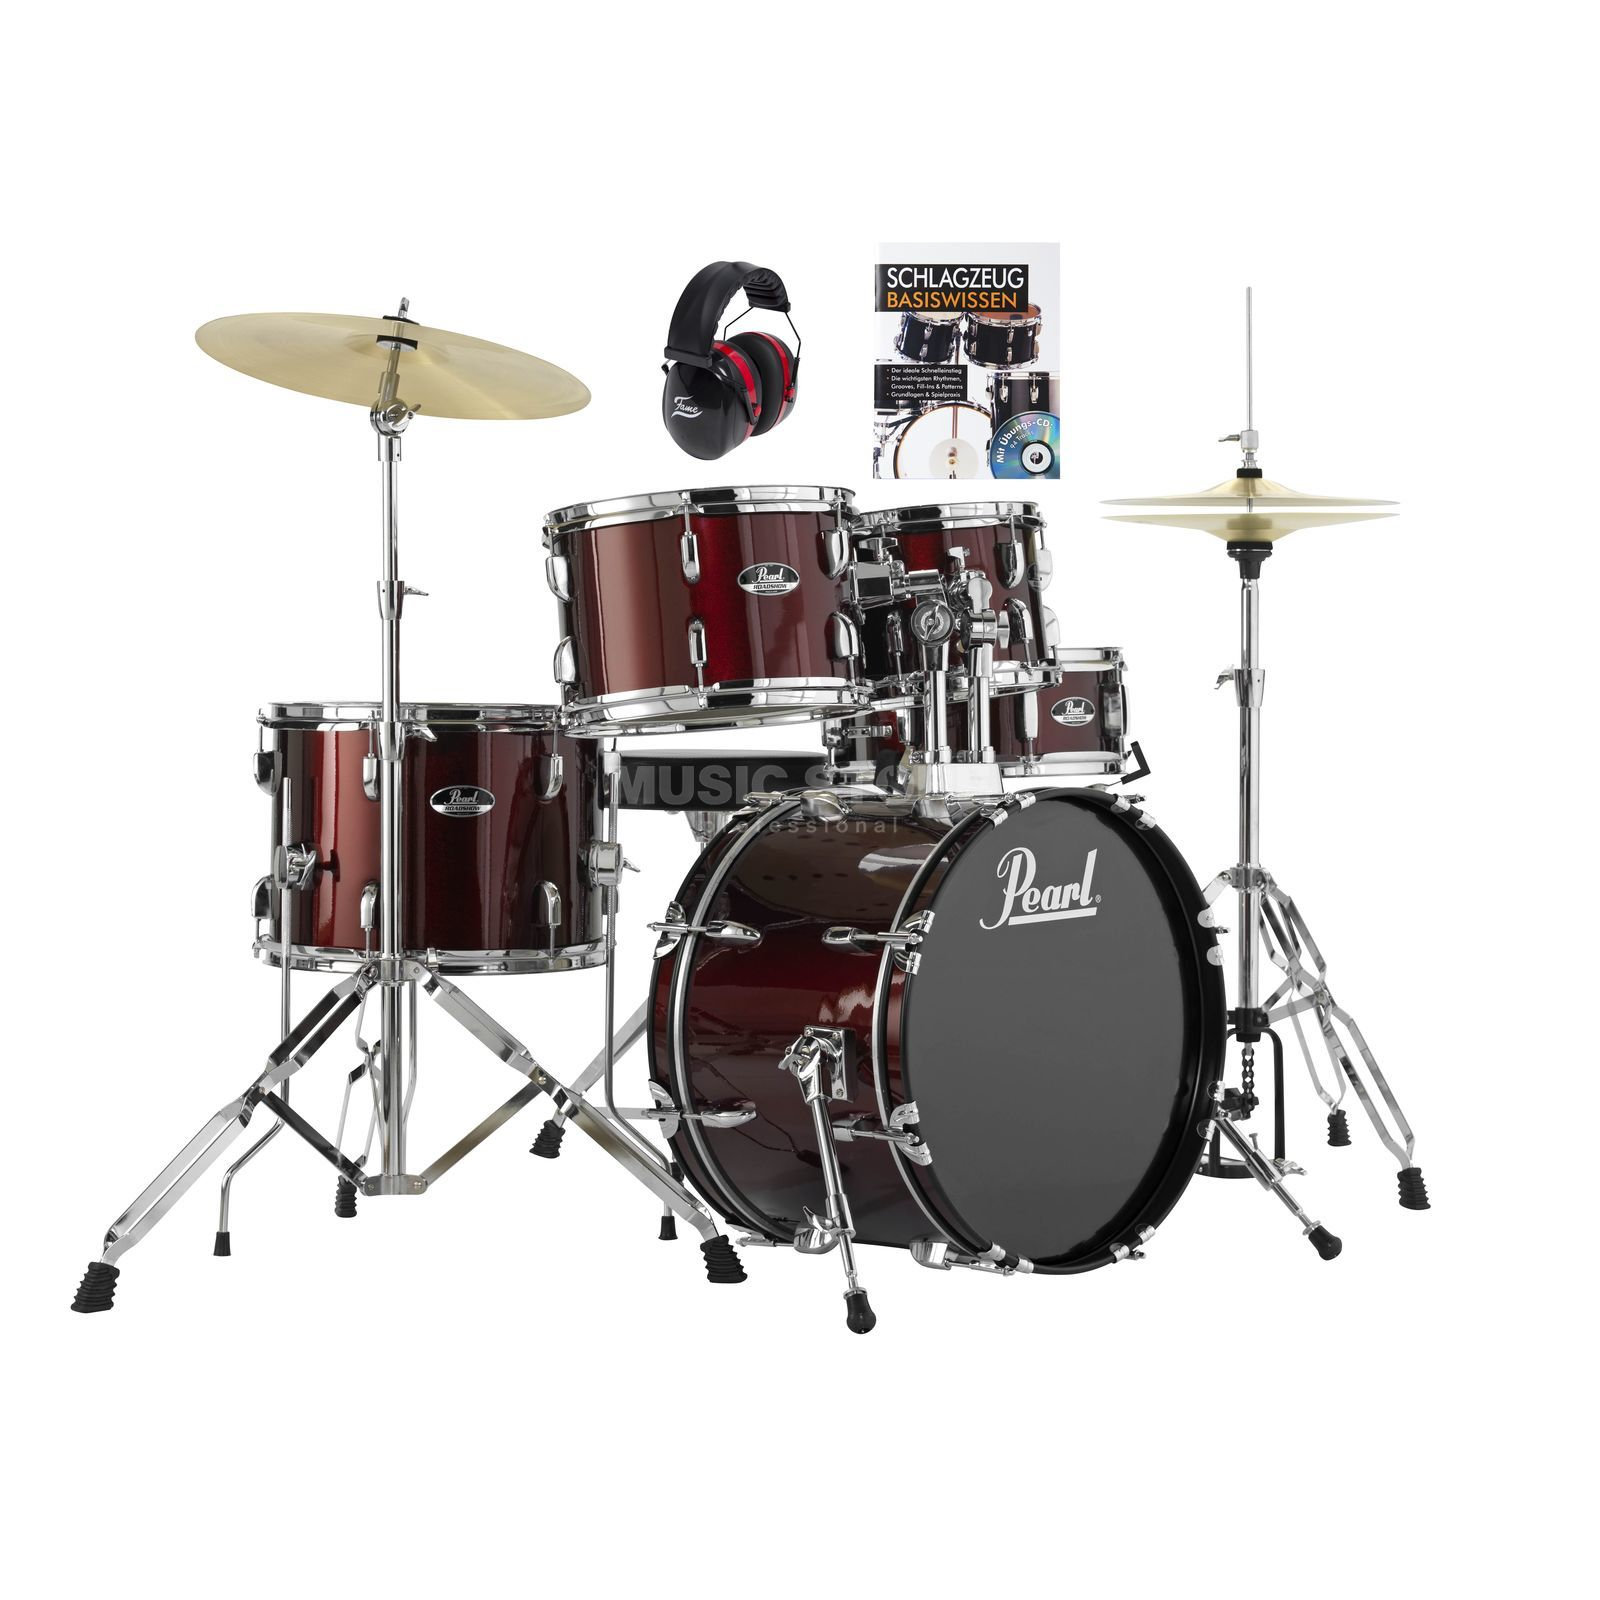 PEARL Roadshow Junior RS585C - Set Produktbild